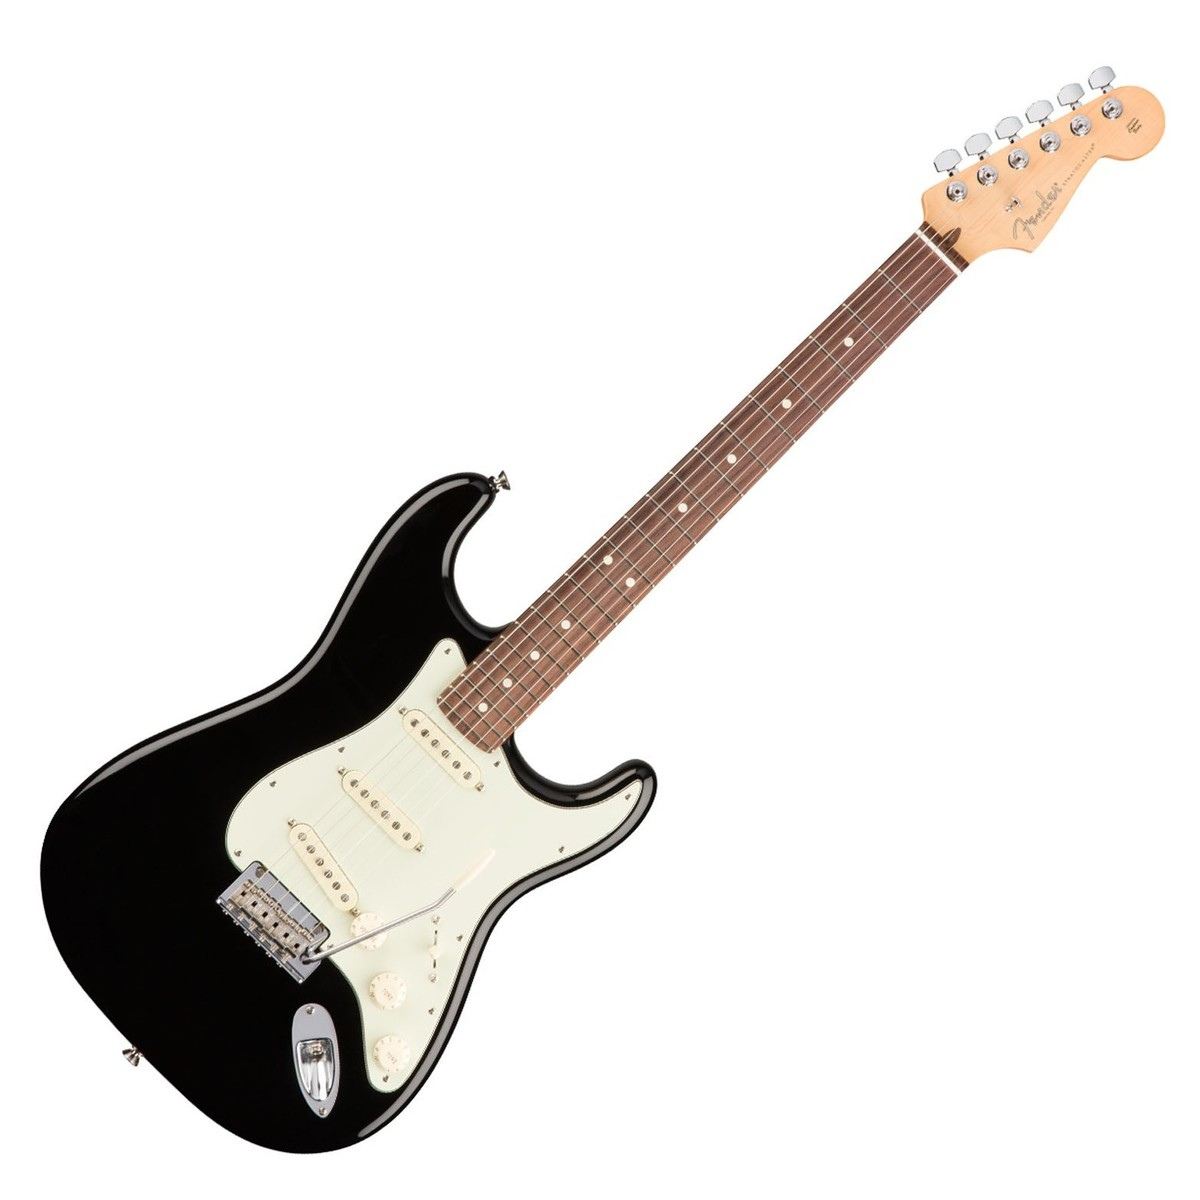 fender american professional stratocaster rw black at gear4music. Black Bedroom Furniture Sets. Home Design Ideas